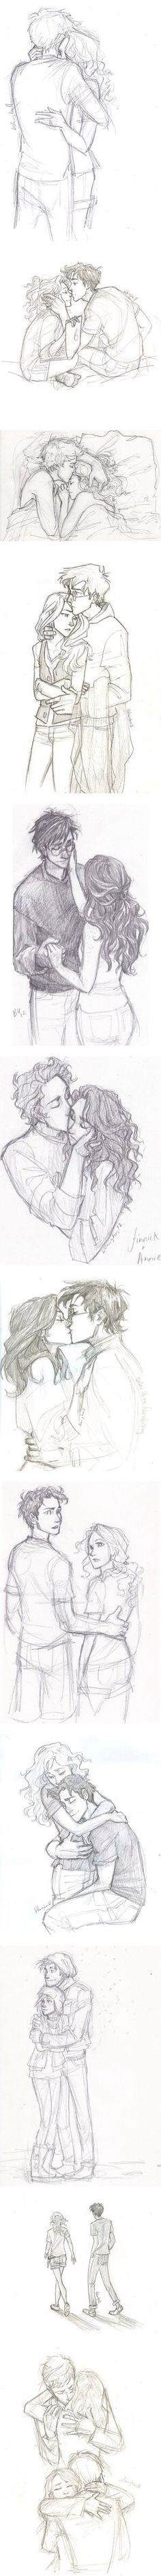 Drawings of love